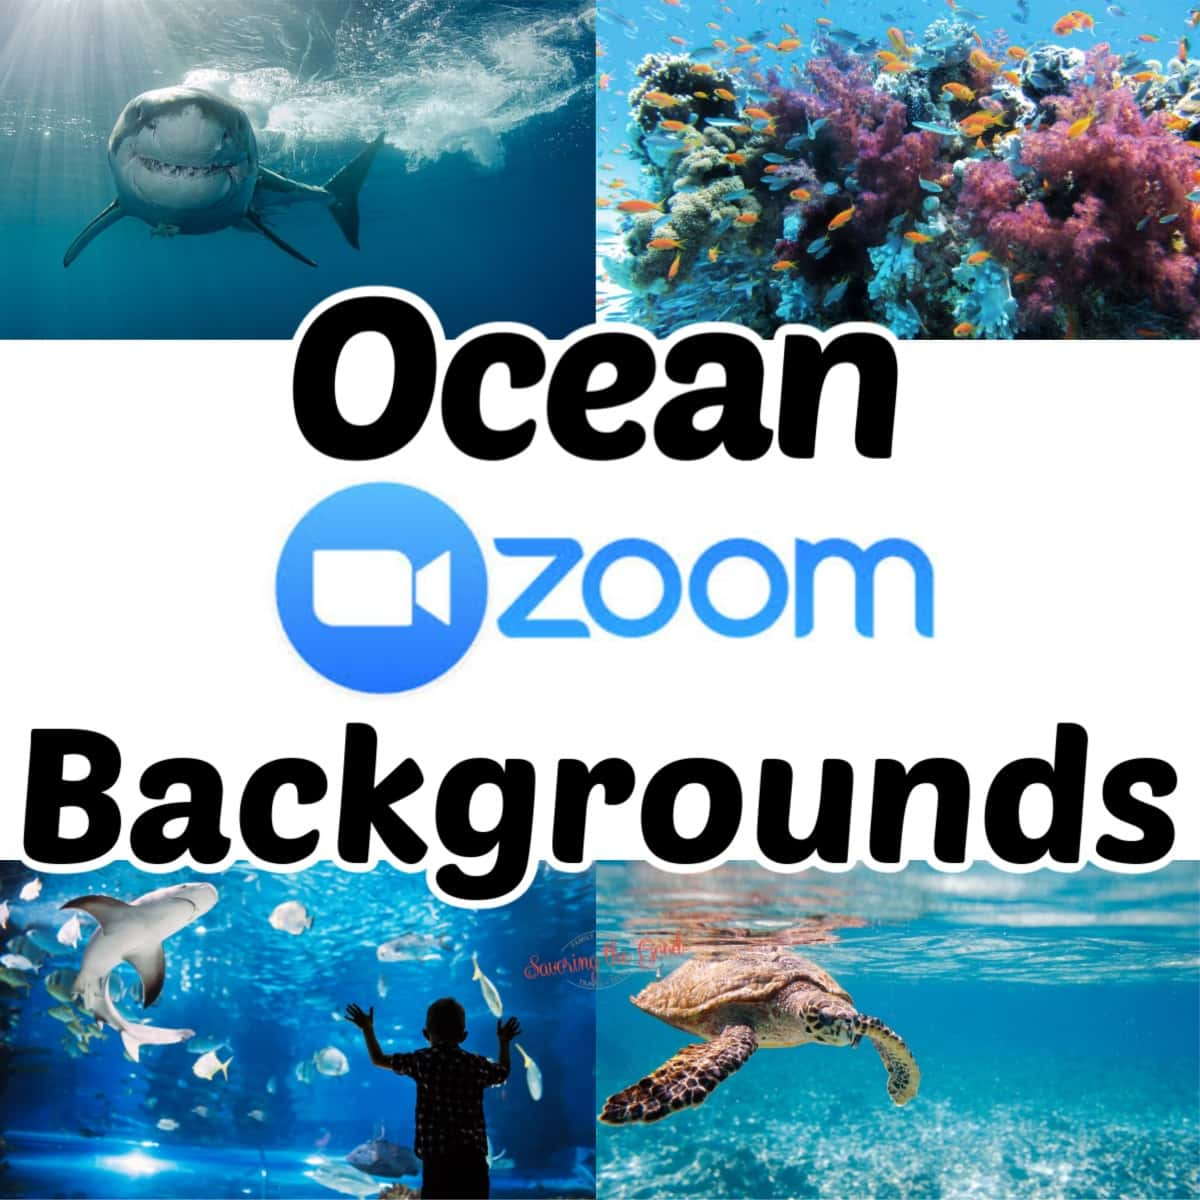 Ocean Themed Zoom Backgrounds graphic